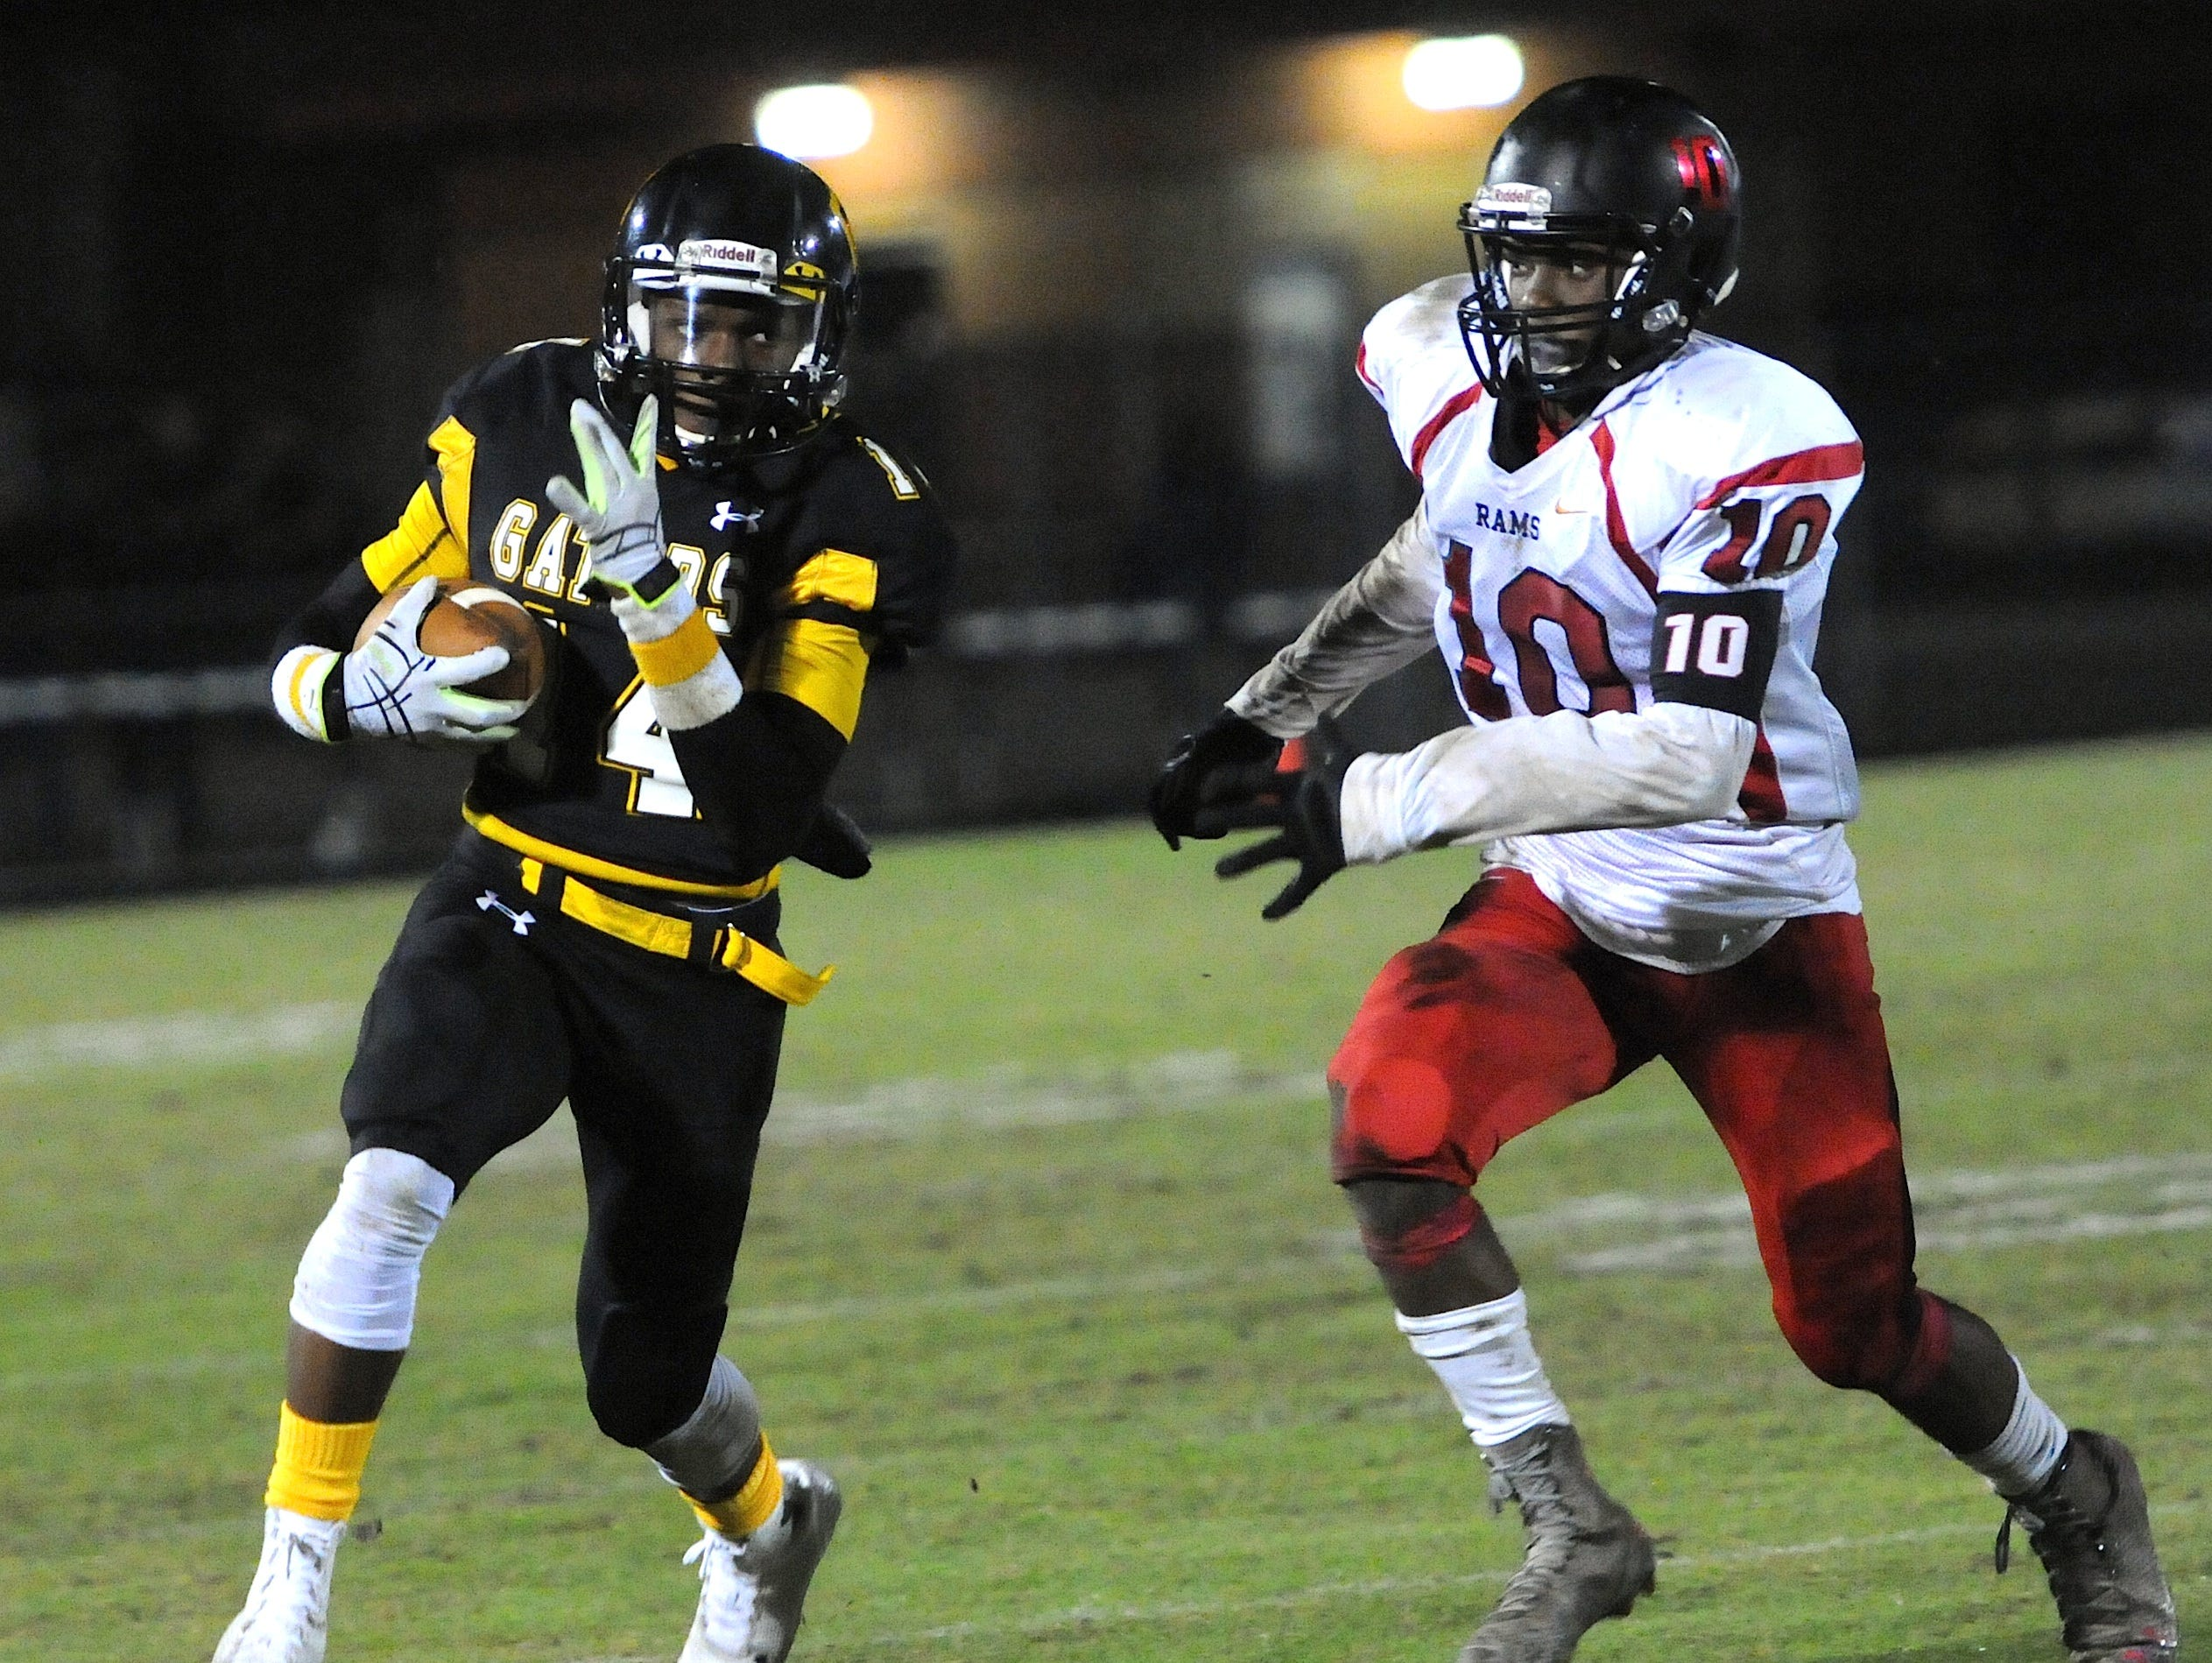 Goose Creek running back Rache McMillian (14) picks up a first down before being tackled by Hillcrest's Quendarius Jefferson.